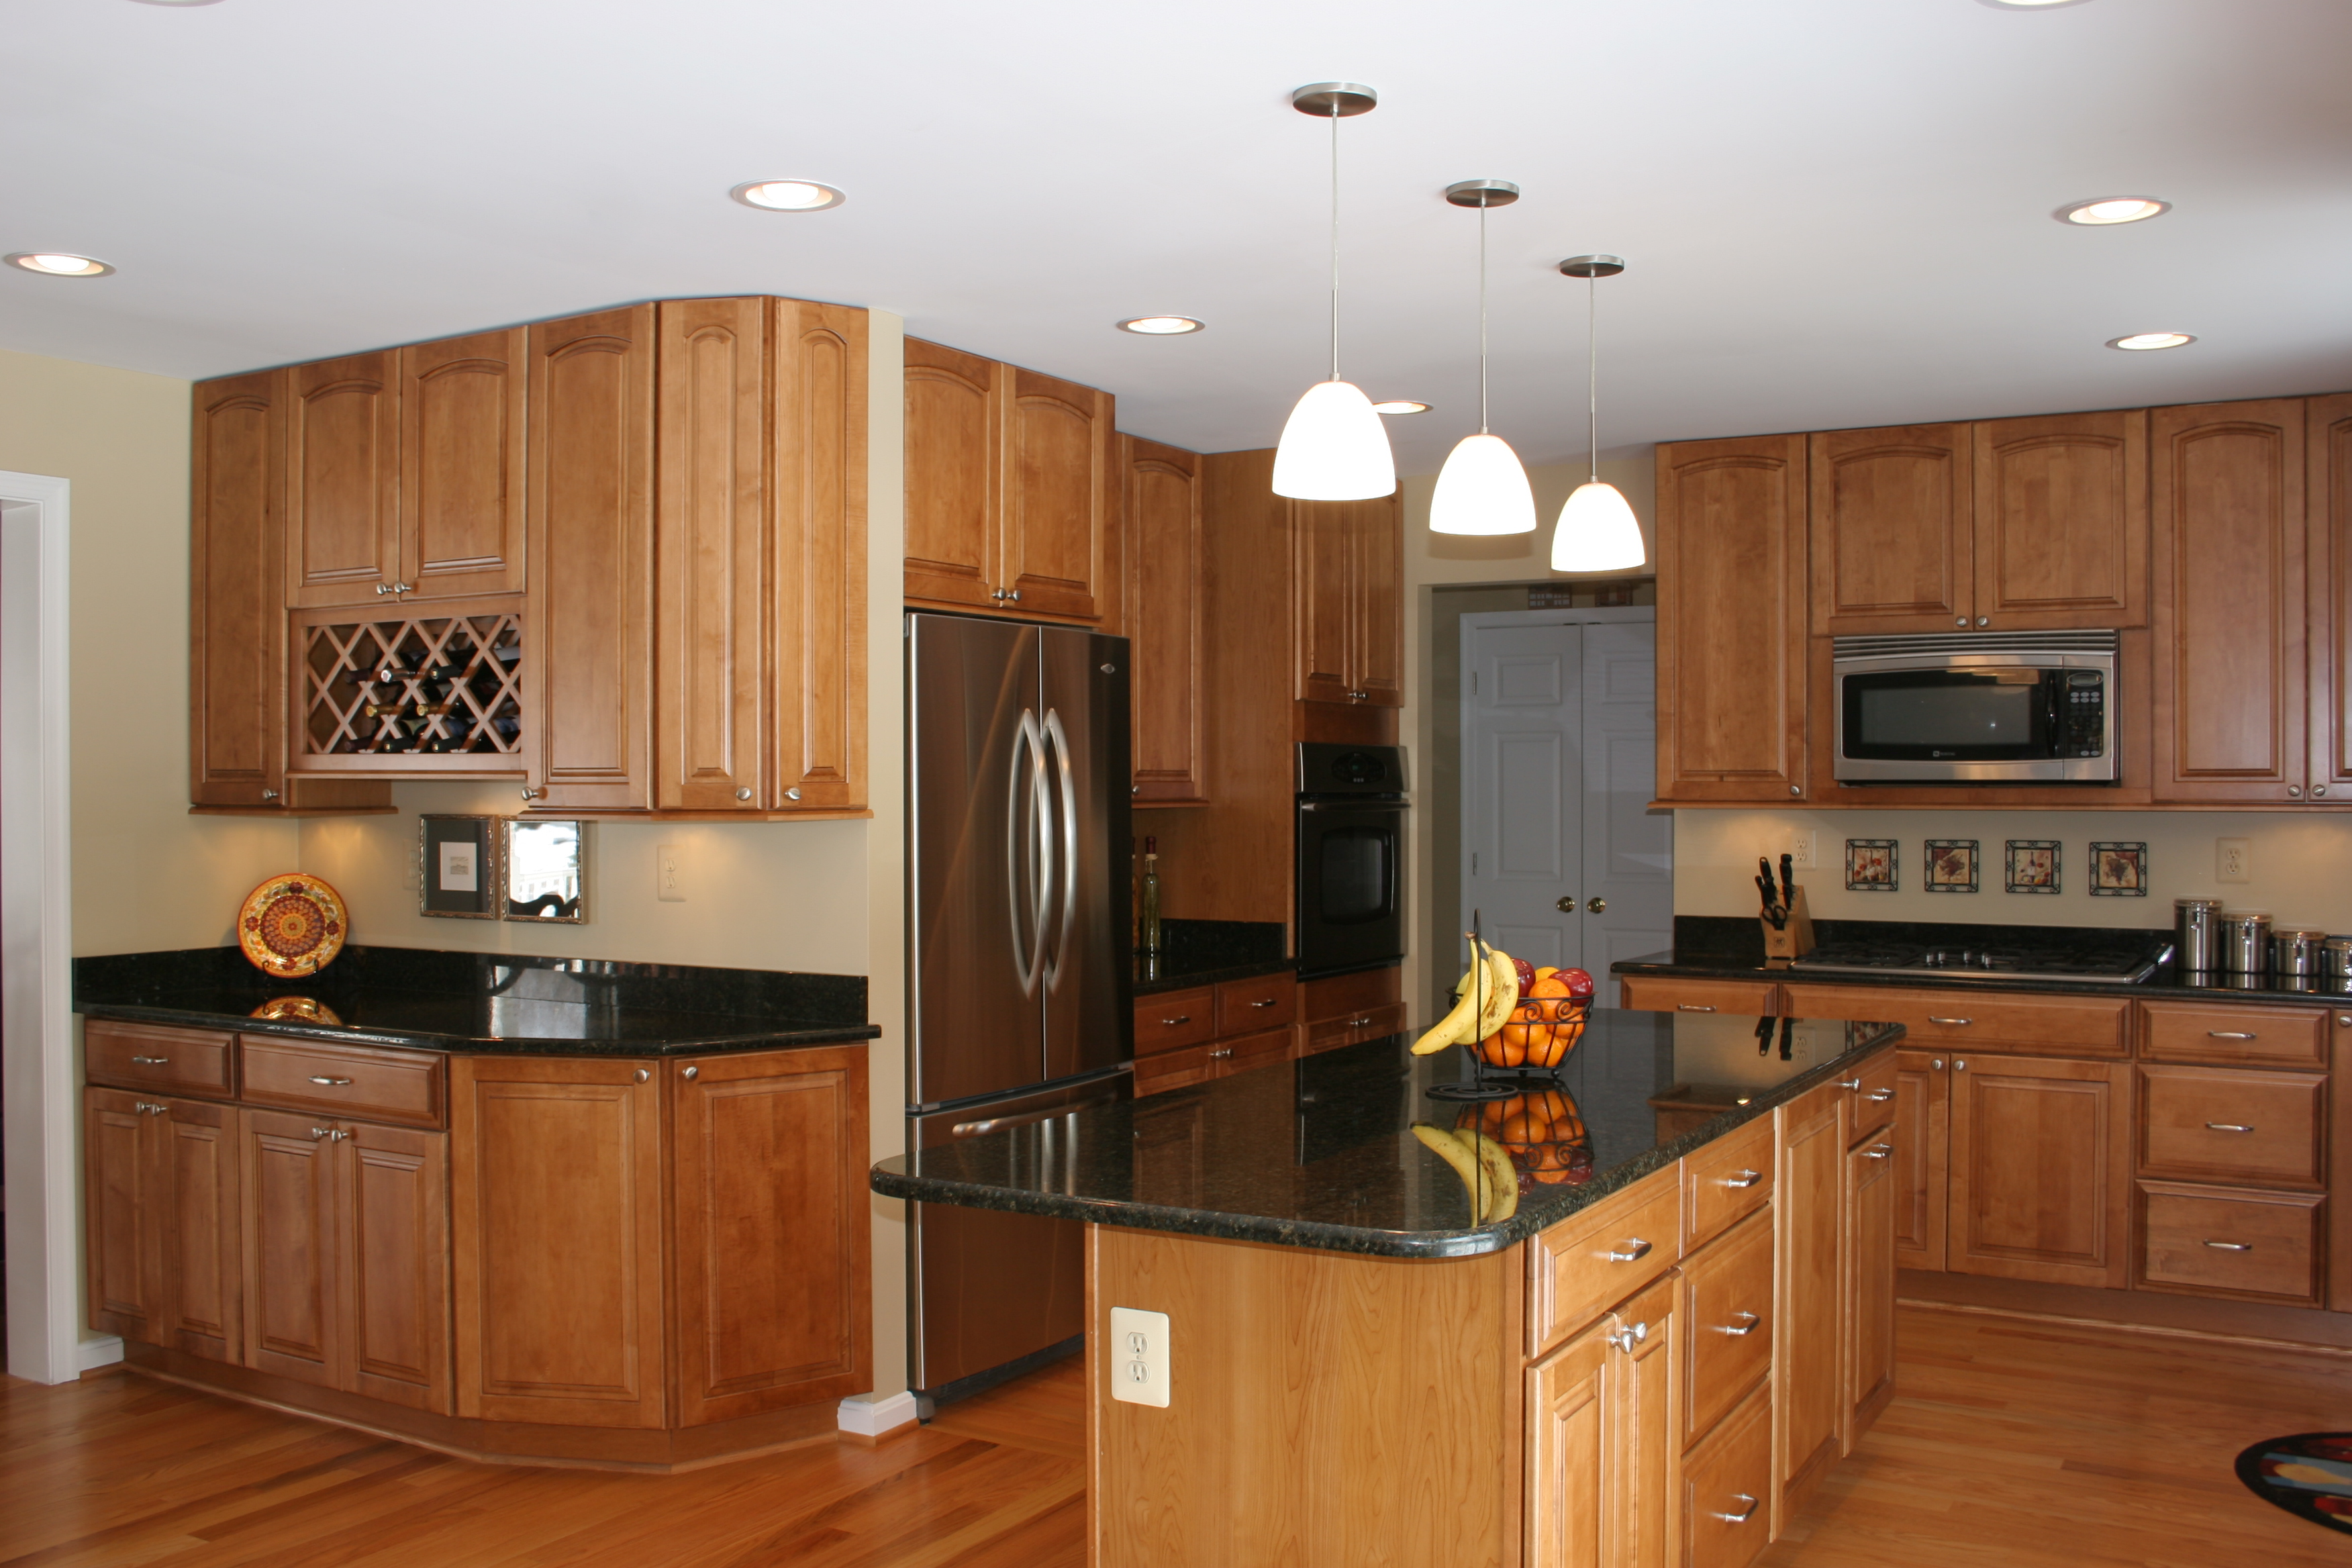 Home Depot Kitchen Design Sized in Small Spaces  MYKITCHENINTERIOR